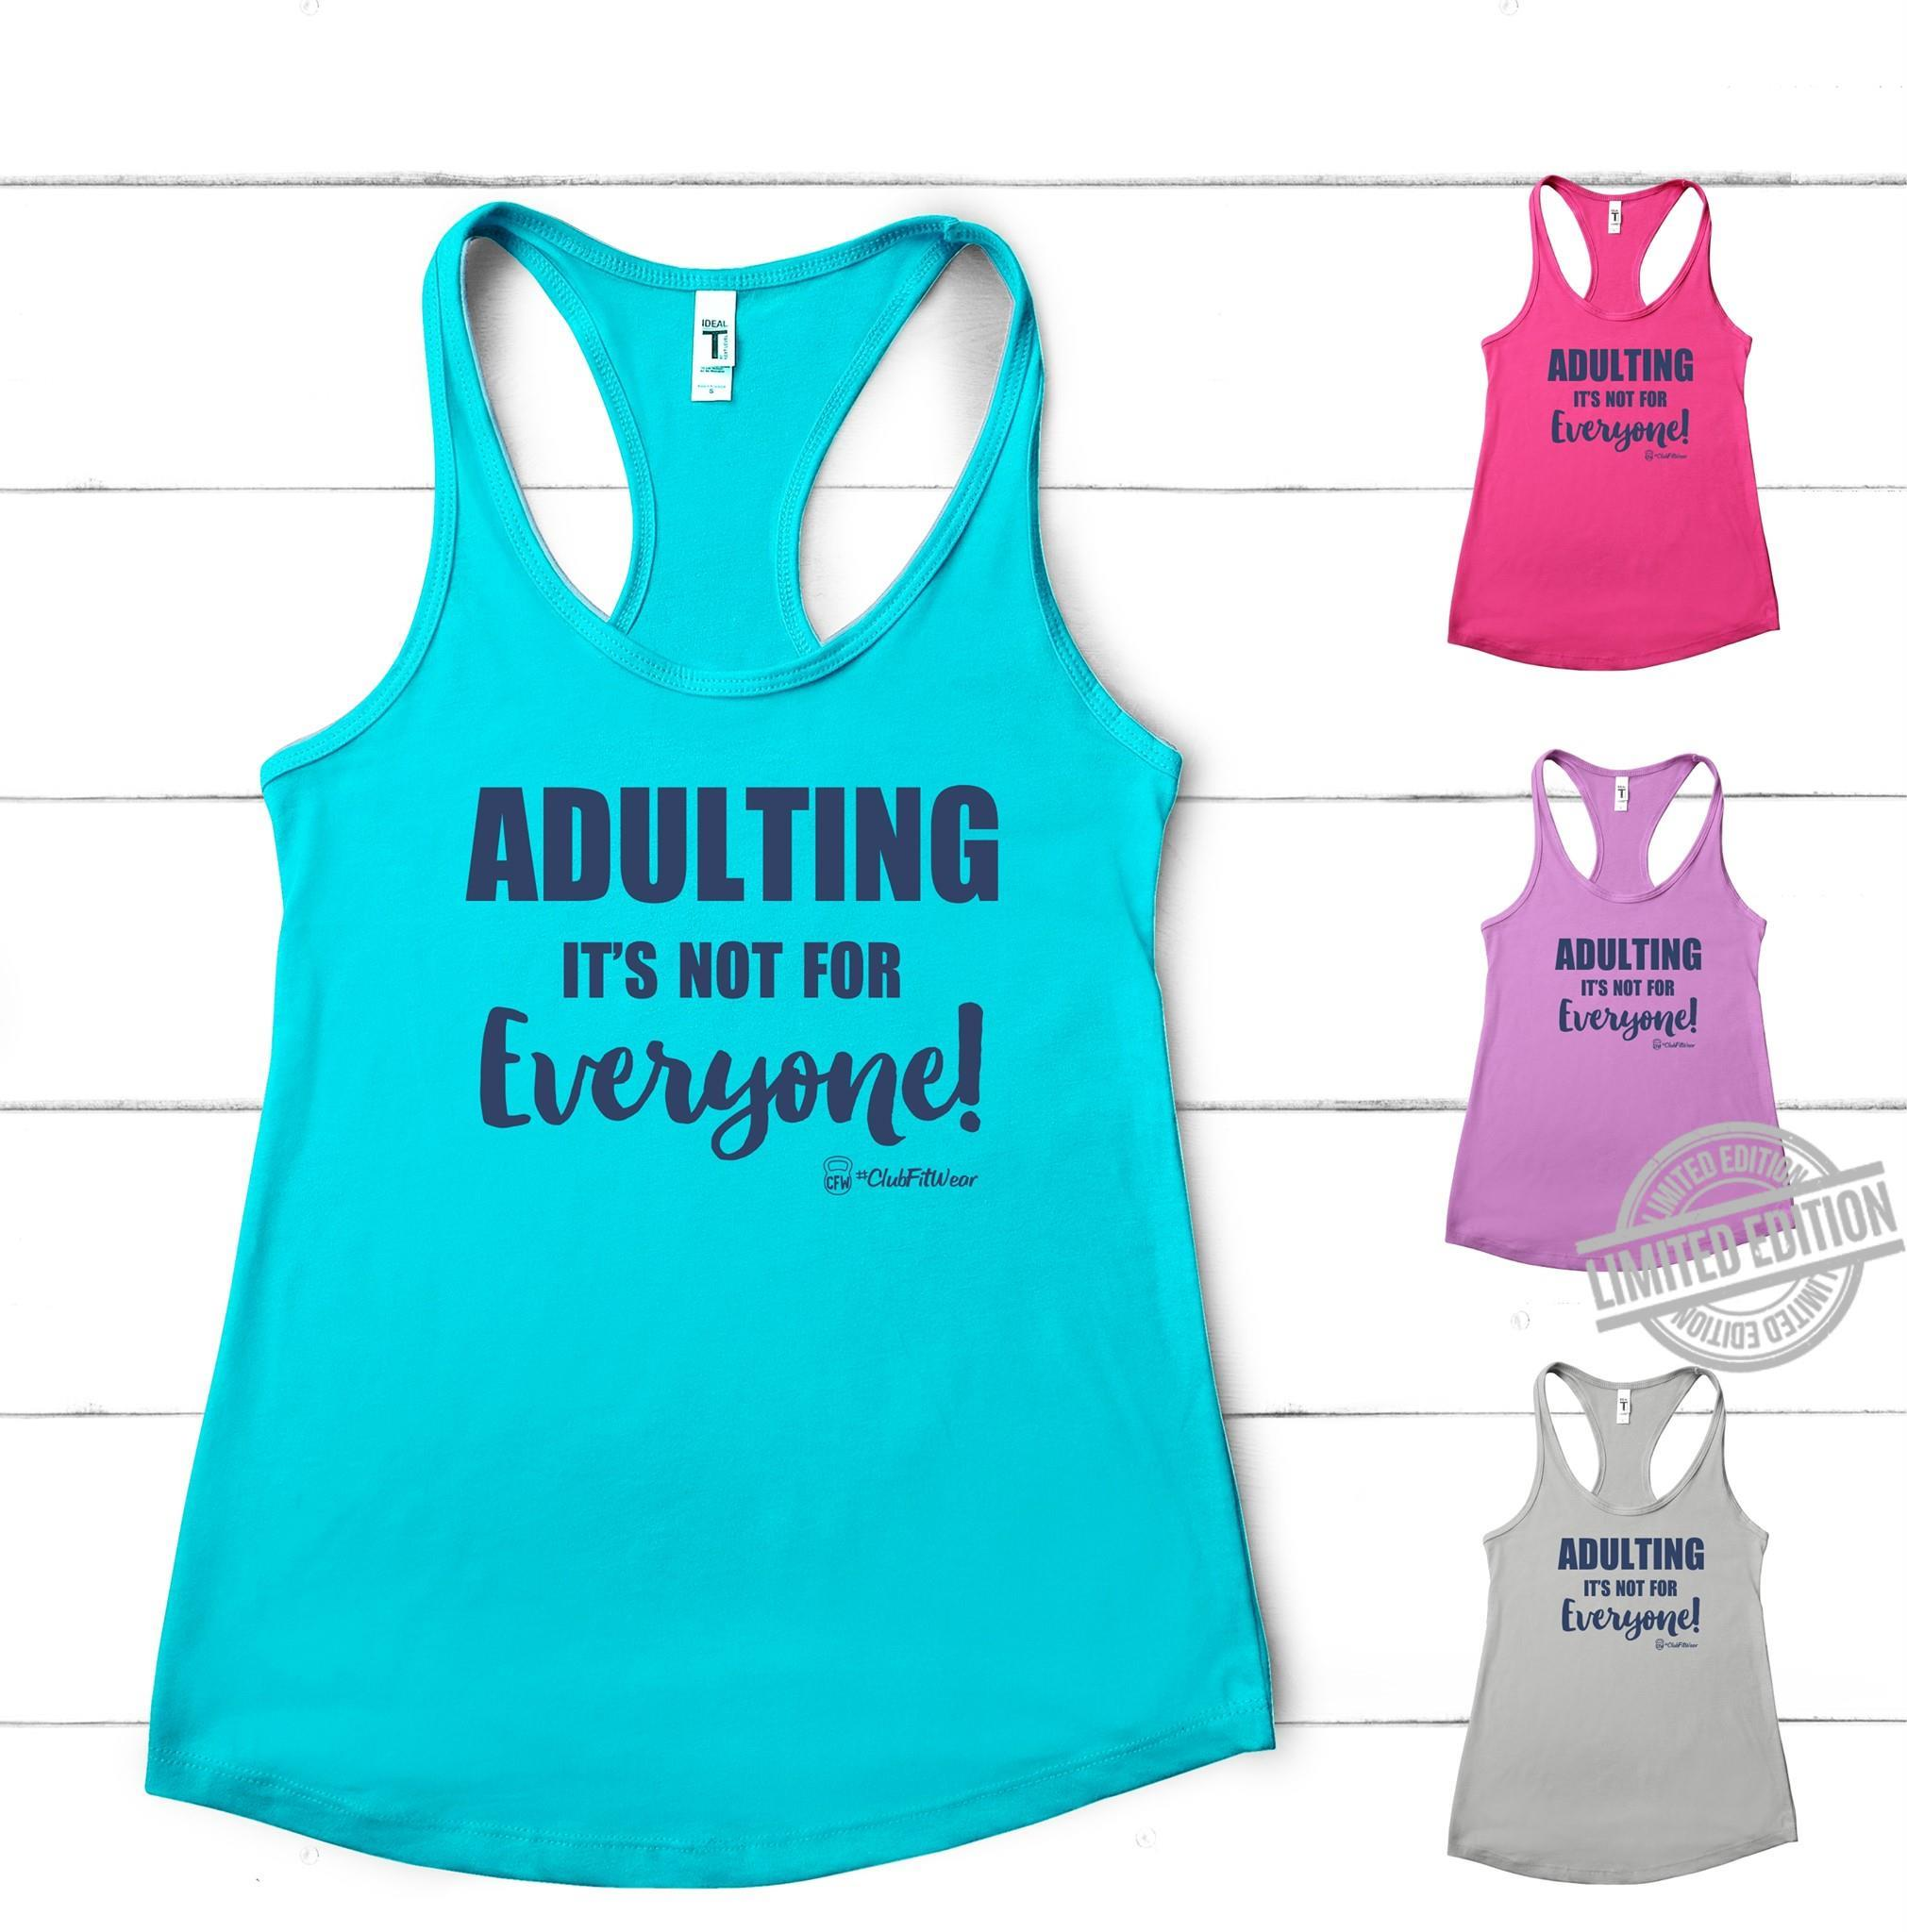 Adulting It's Not For Everyone Shirt